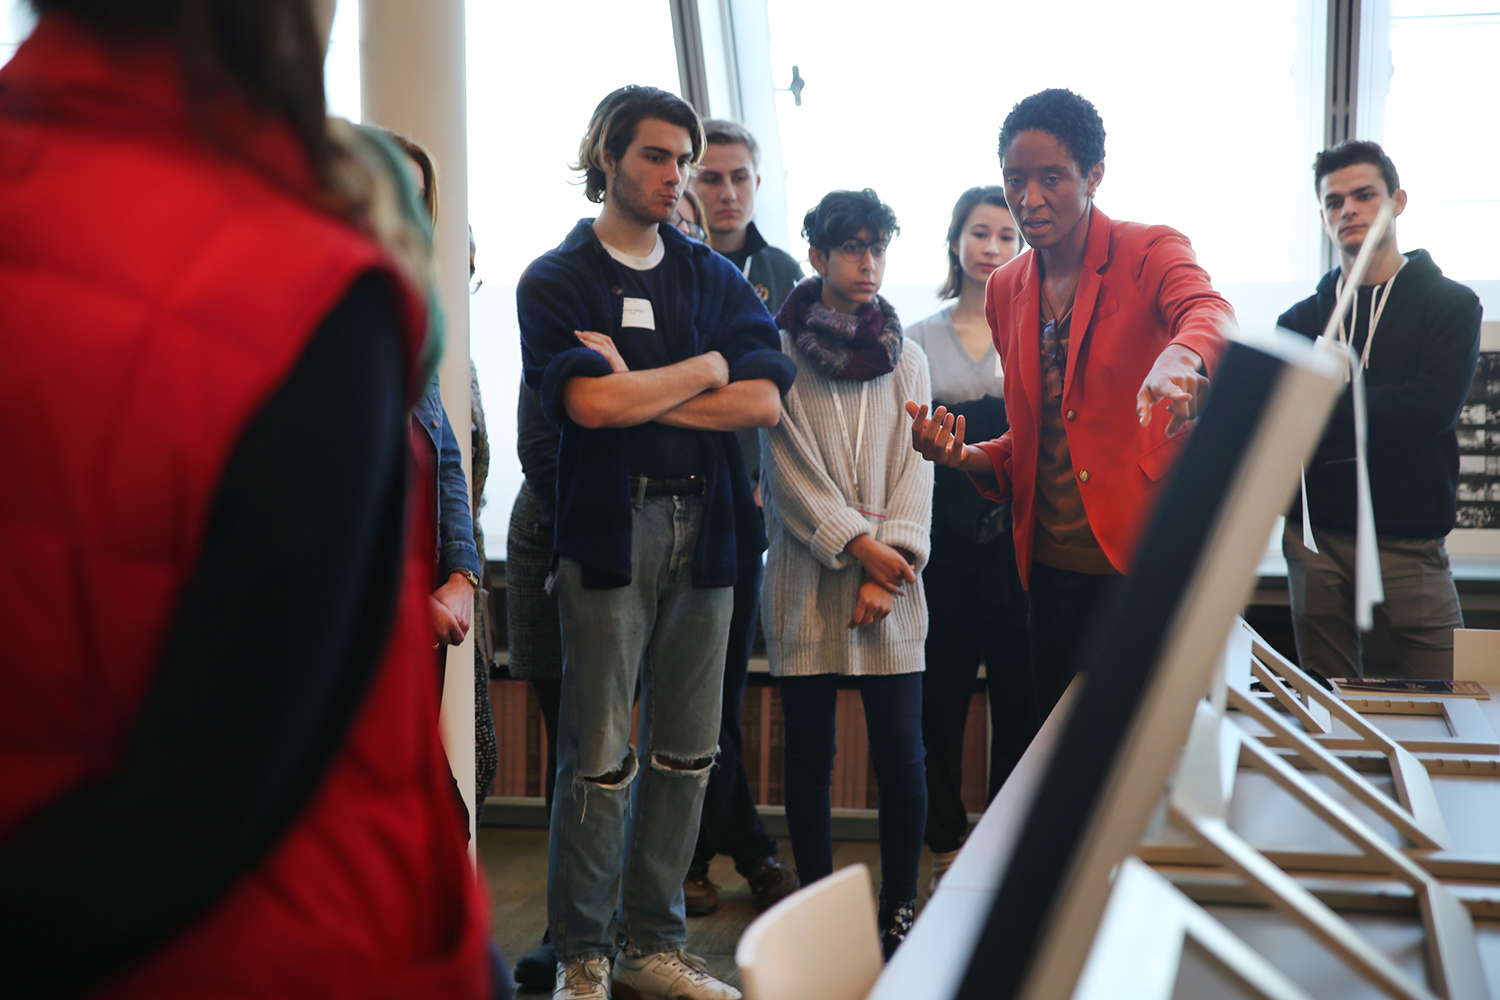 Makeda Best, the Richard L. Menschel Curator of Photography, discusses works of photography with student guides during a workshop in the Art Study Center.